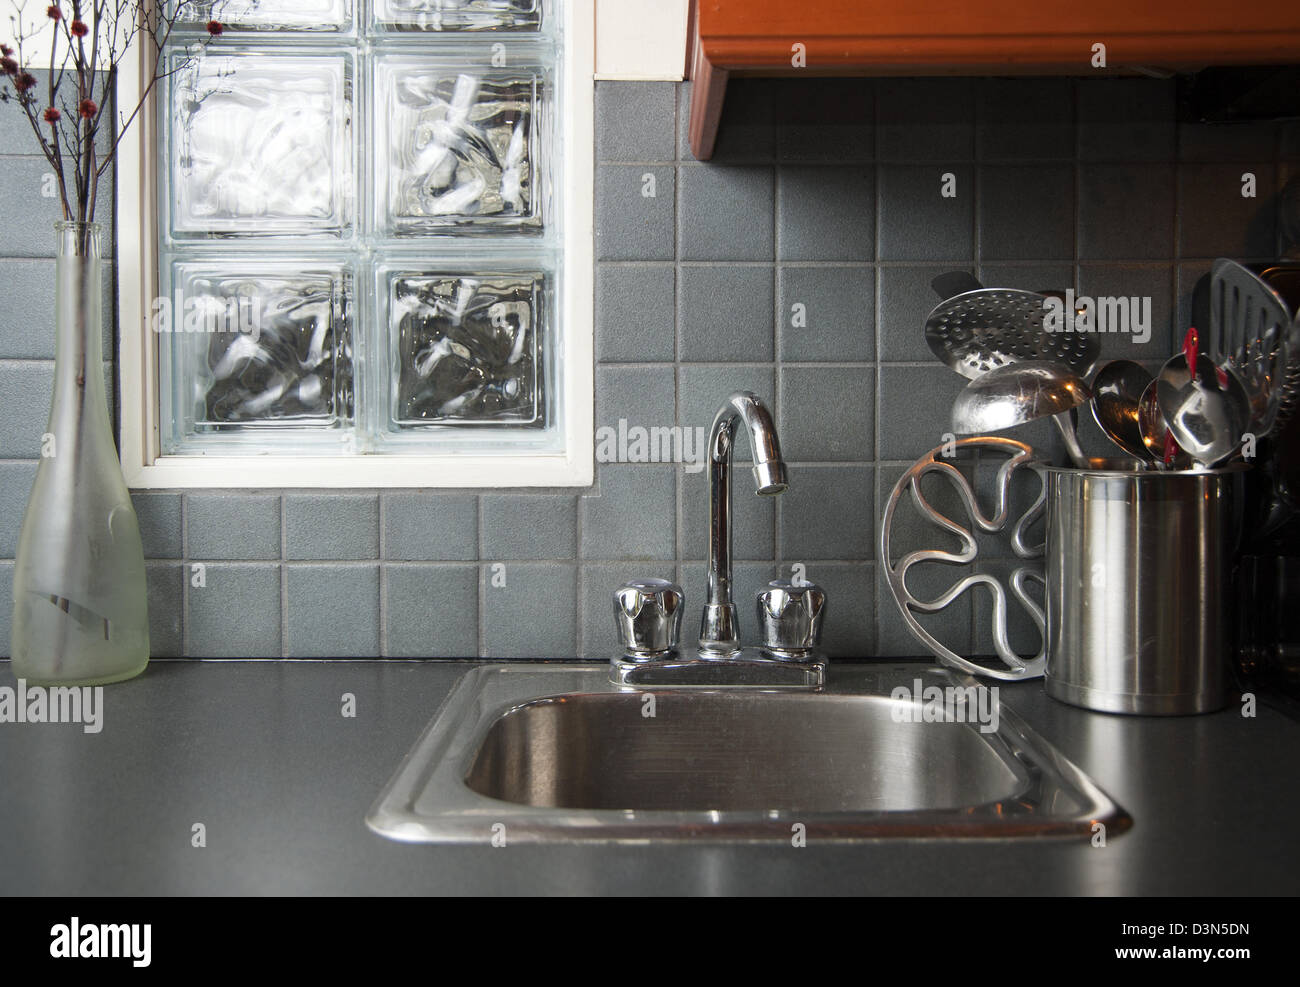 Kitchen sink and utensils on counter top beside sink - Stock Image